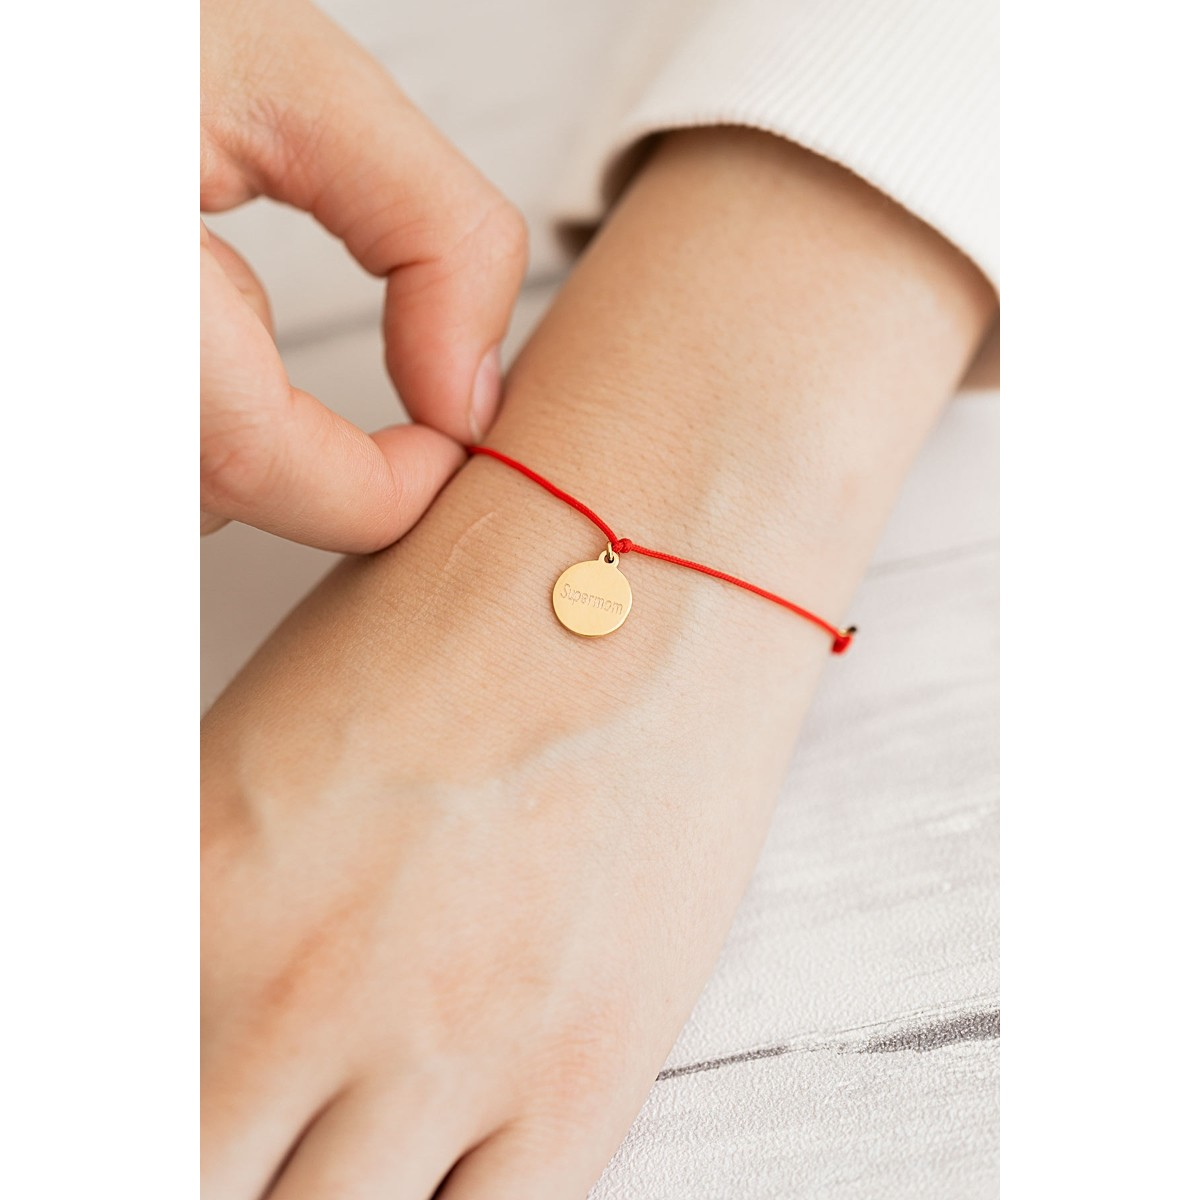 Oh Bracelet Berlin - Armband »Supermom« Farbe Roségold